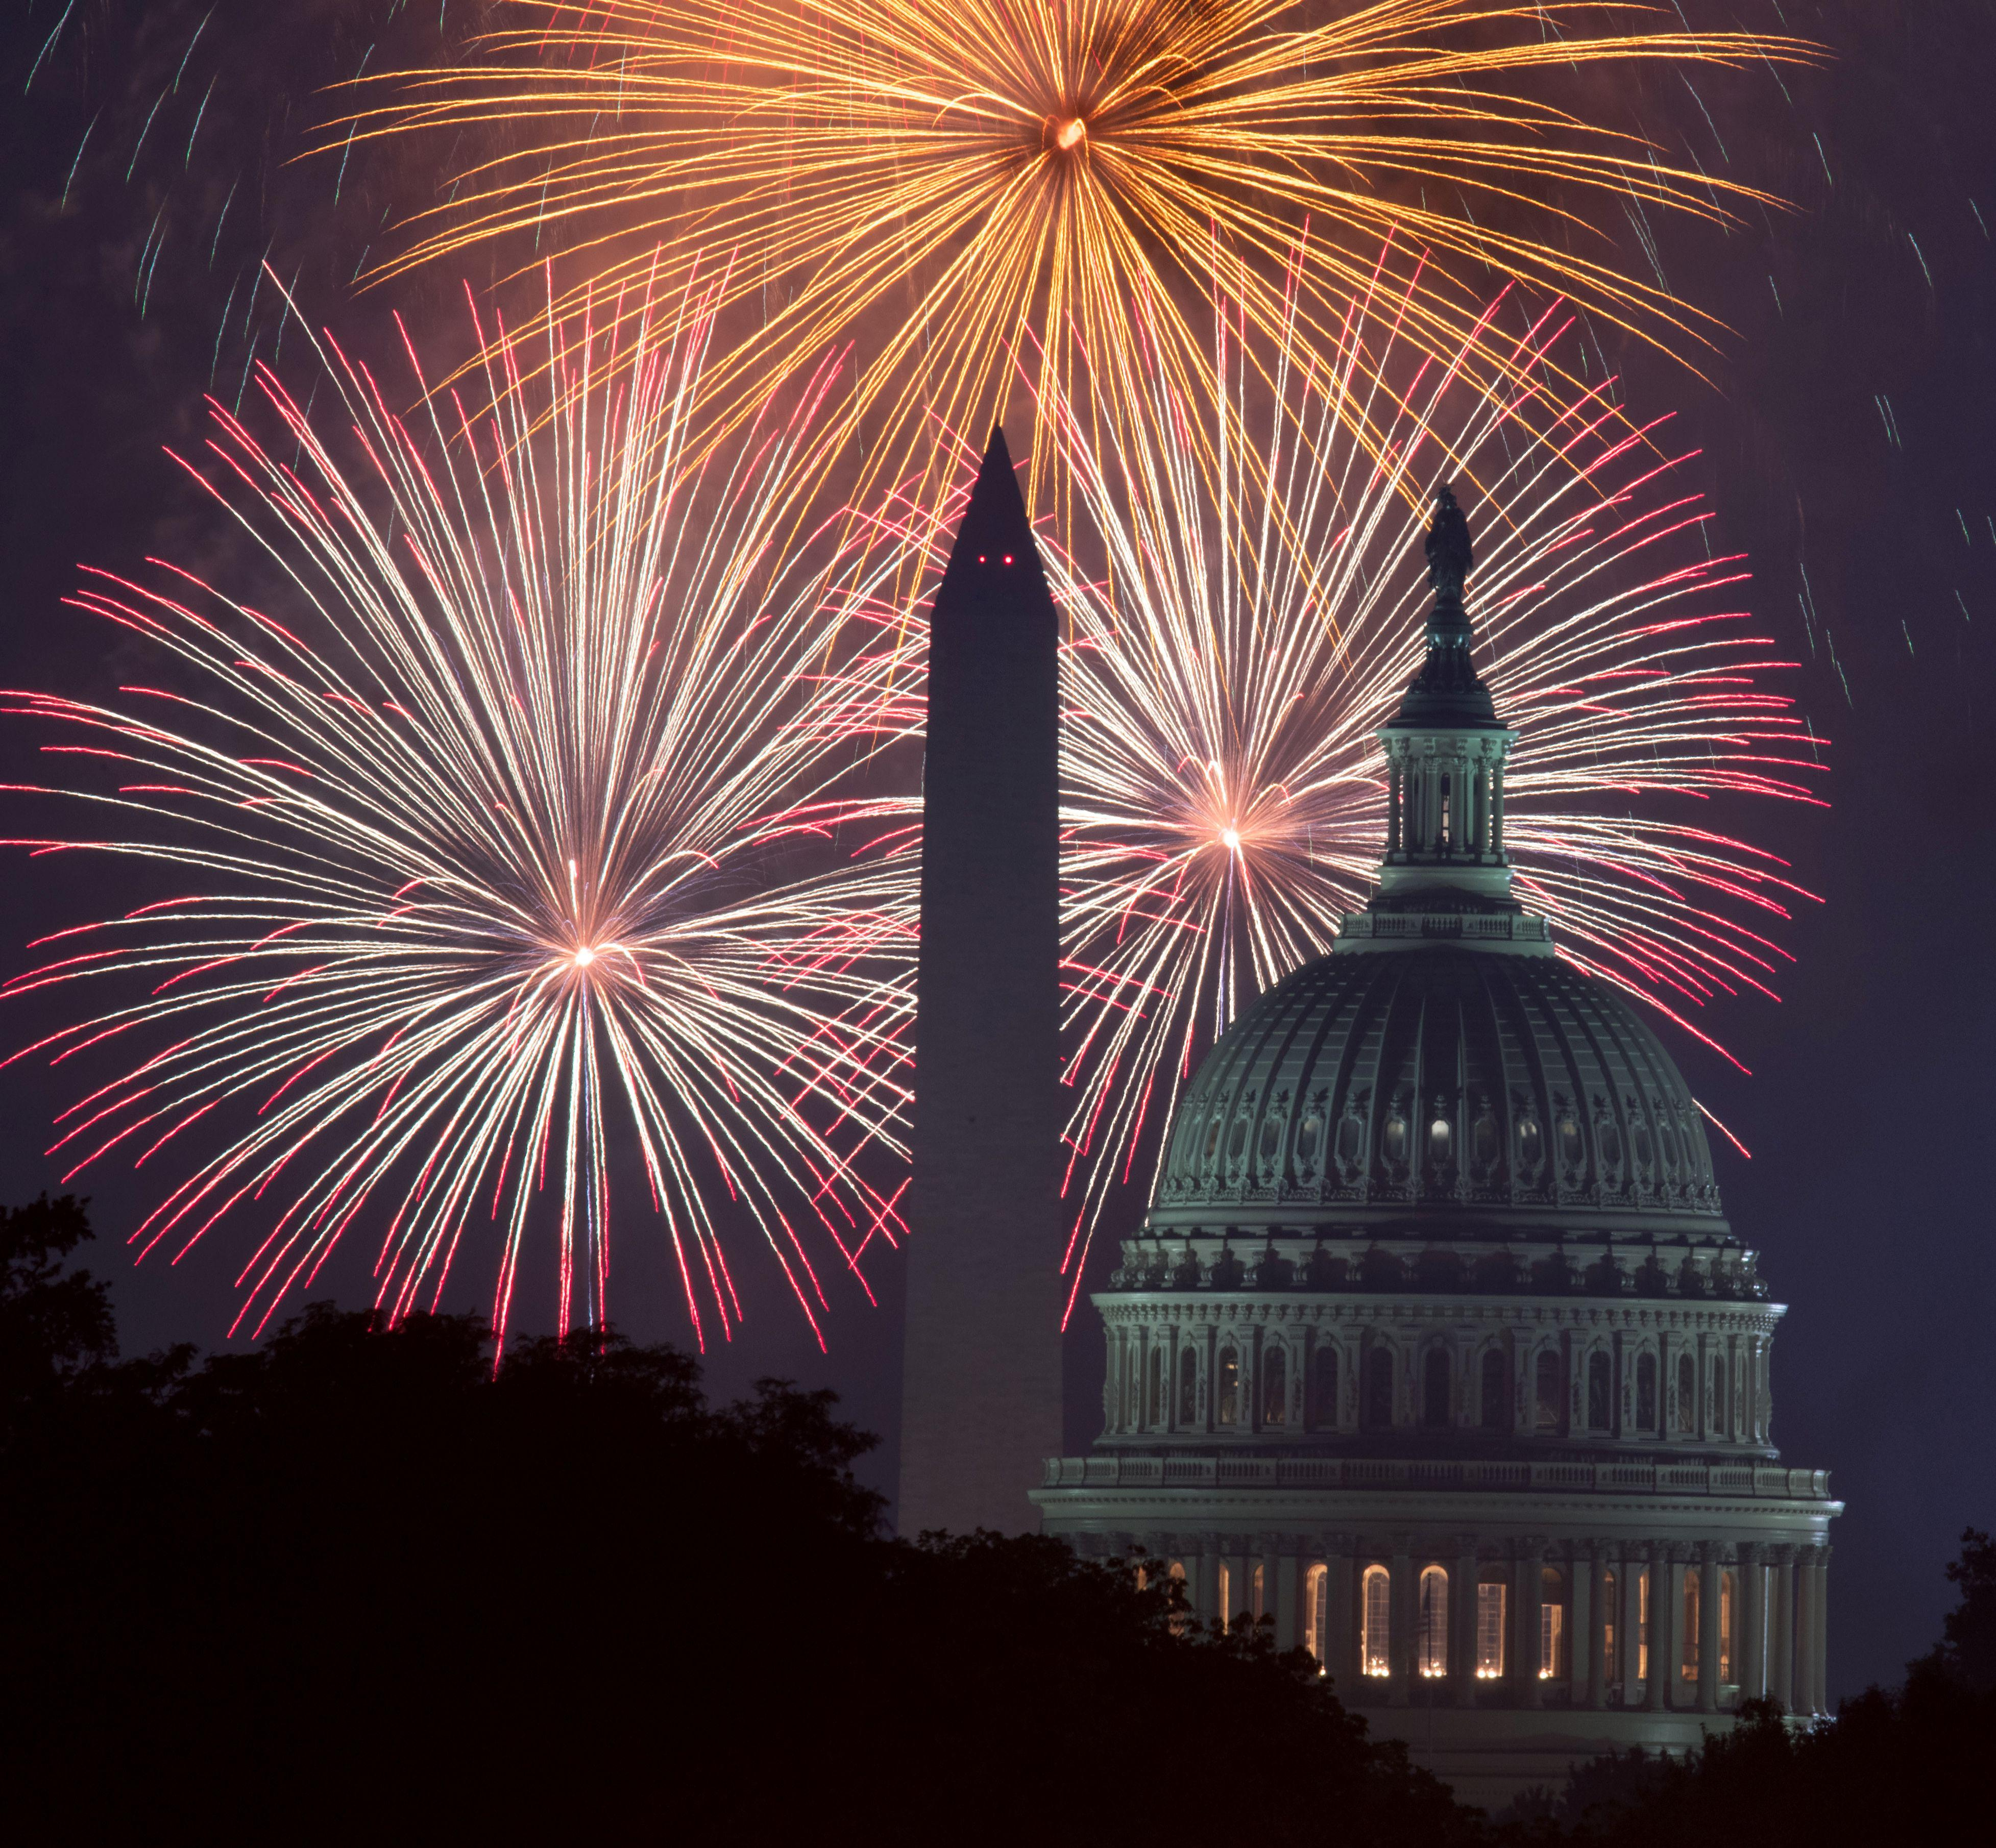 Fireworks explode over the National Mall in Washington, DC, as the US Capitol (R) and National Monument (C) are seen in the foreground.